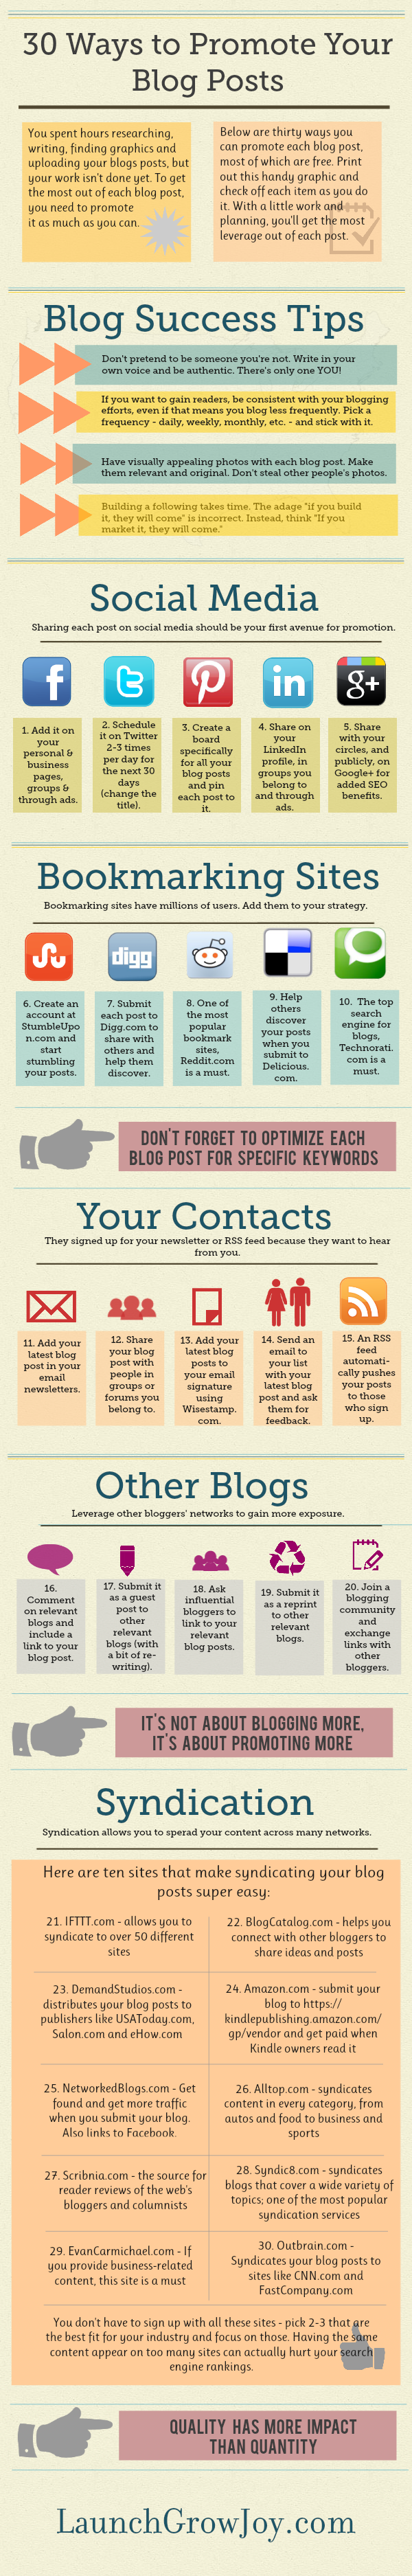 Market Your Blog Posts